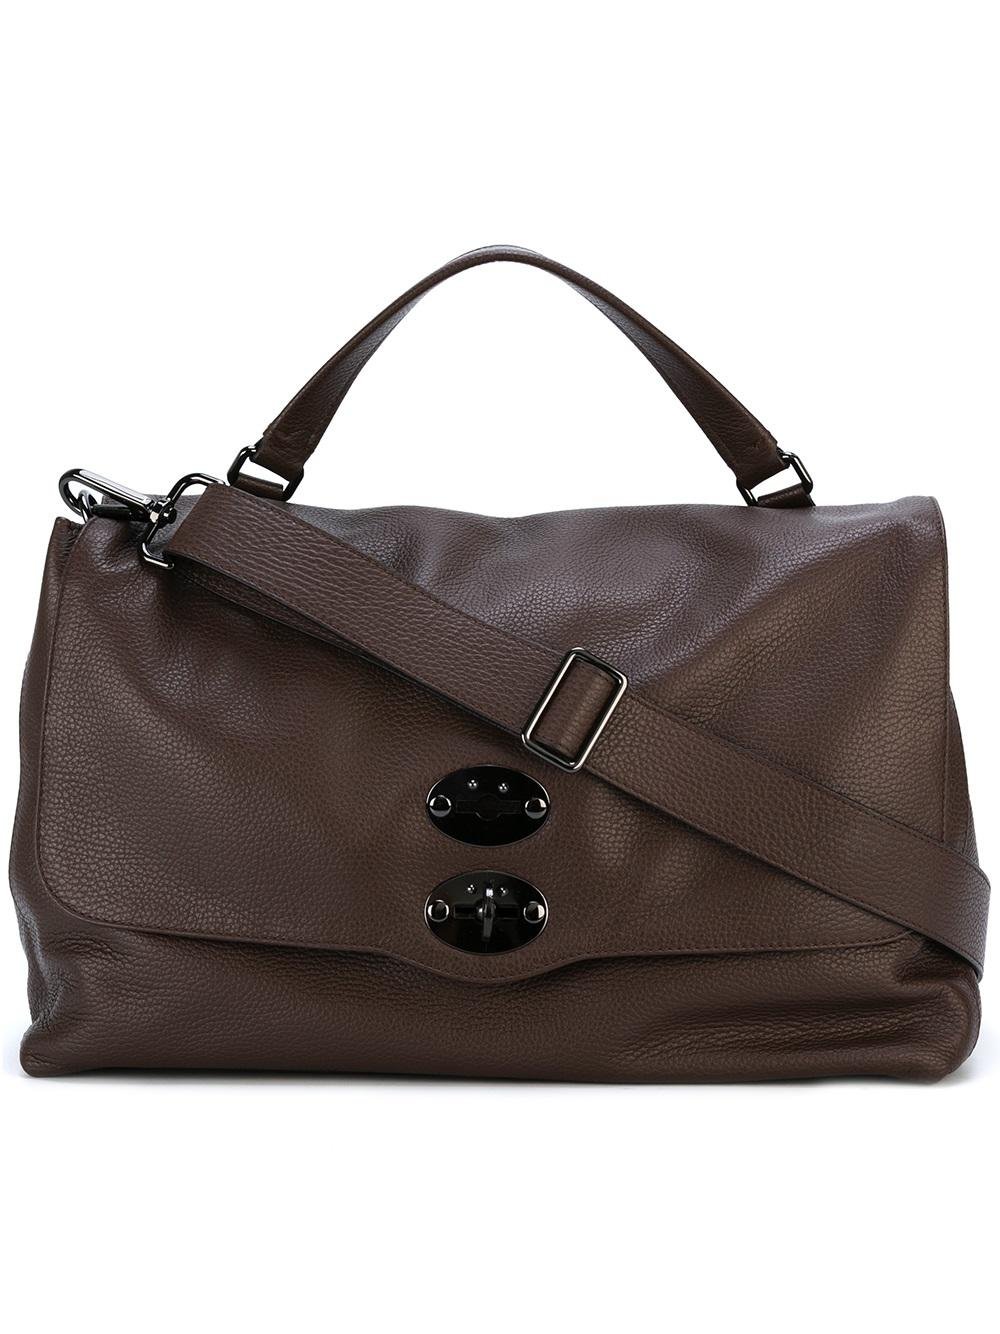 Brown Leather Large Tote Bag